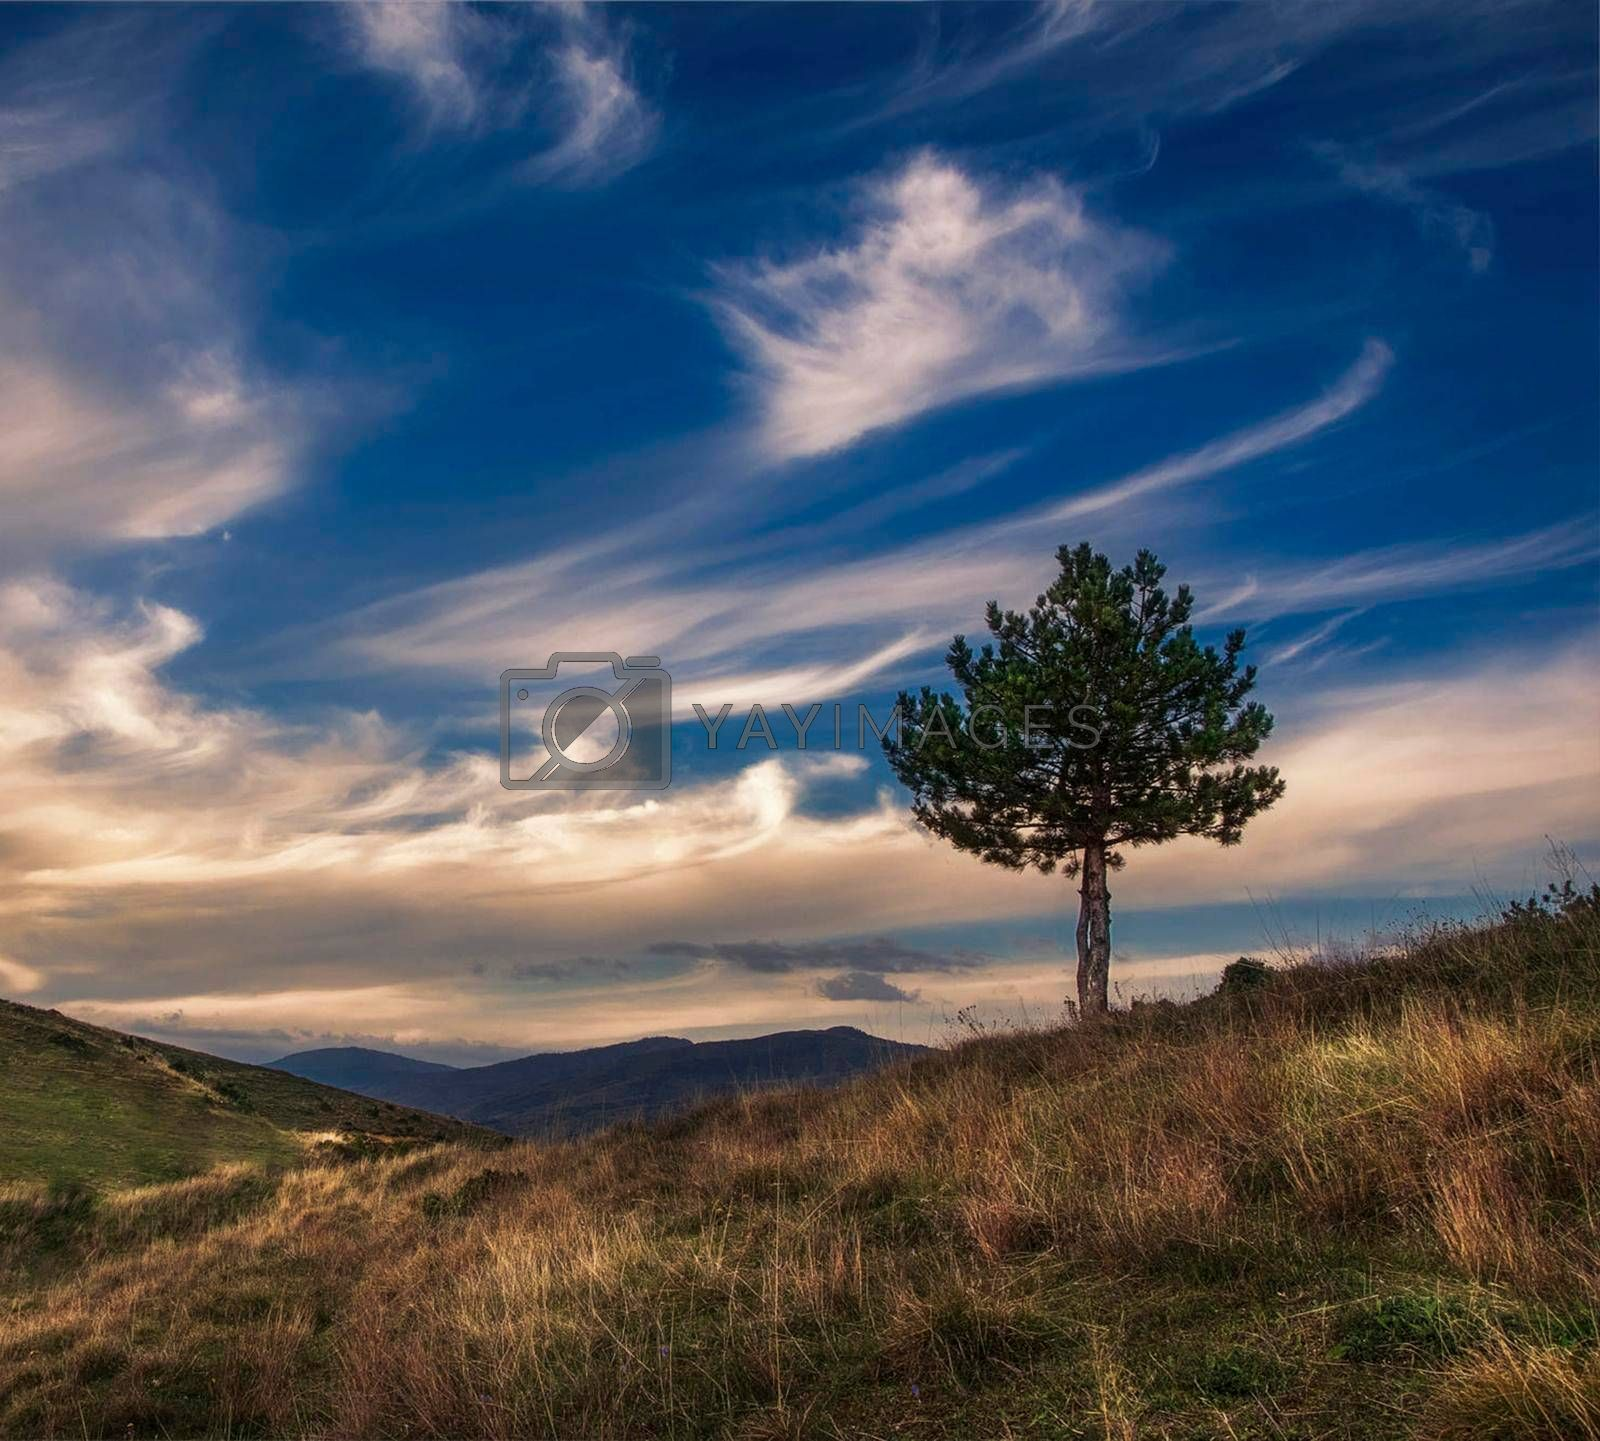 Royalty free image of Macedonia pictures by TravelSync27